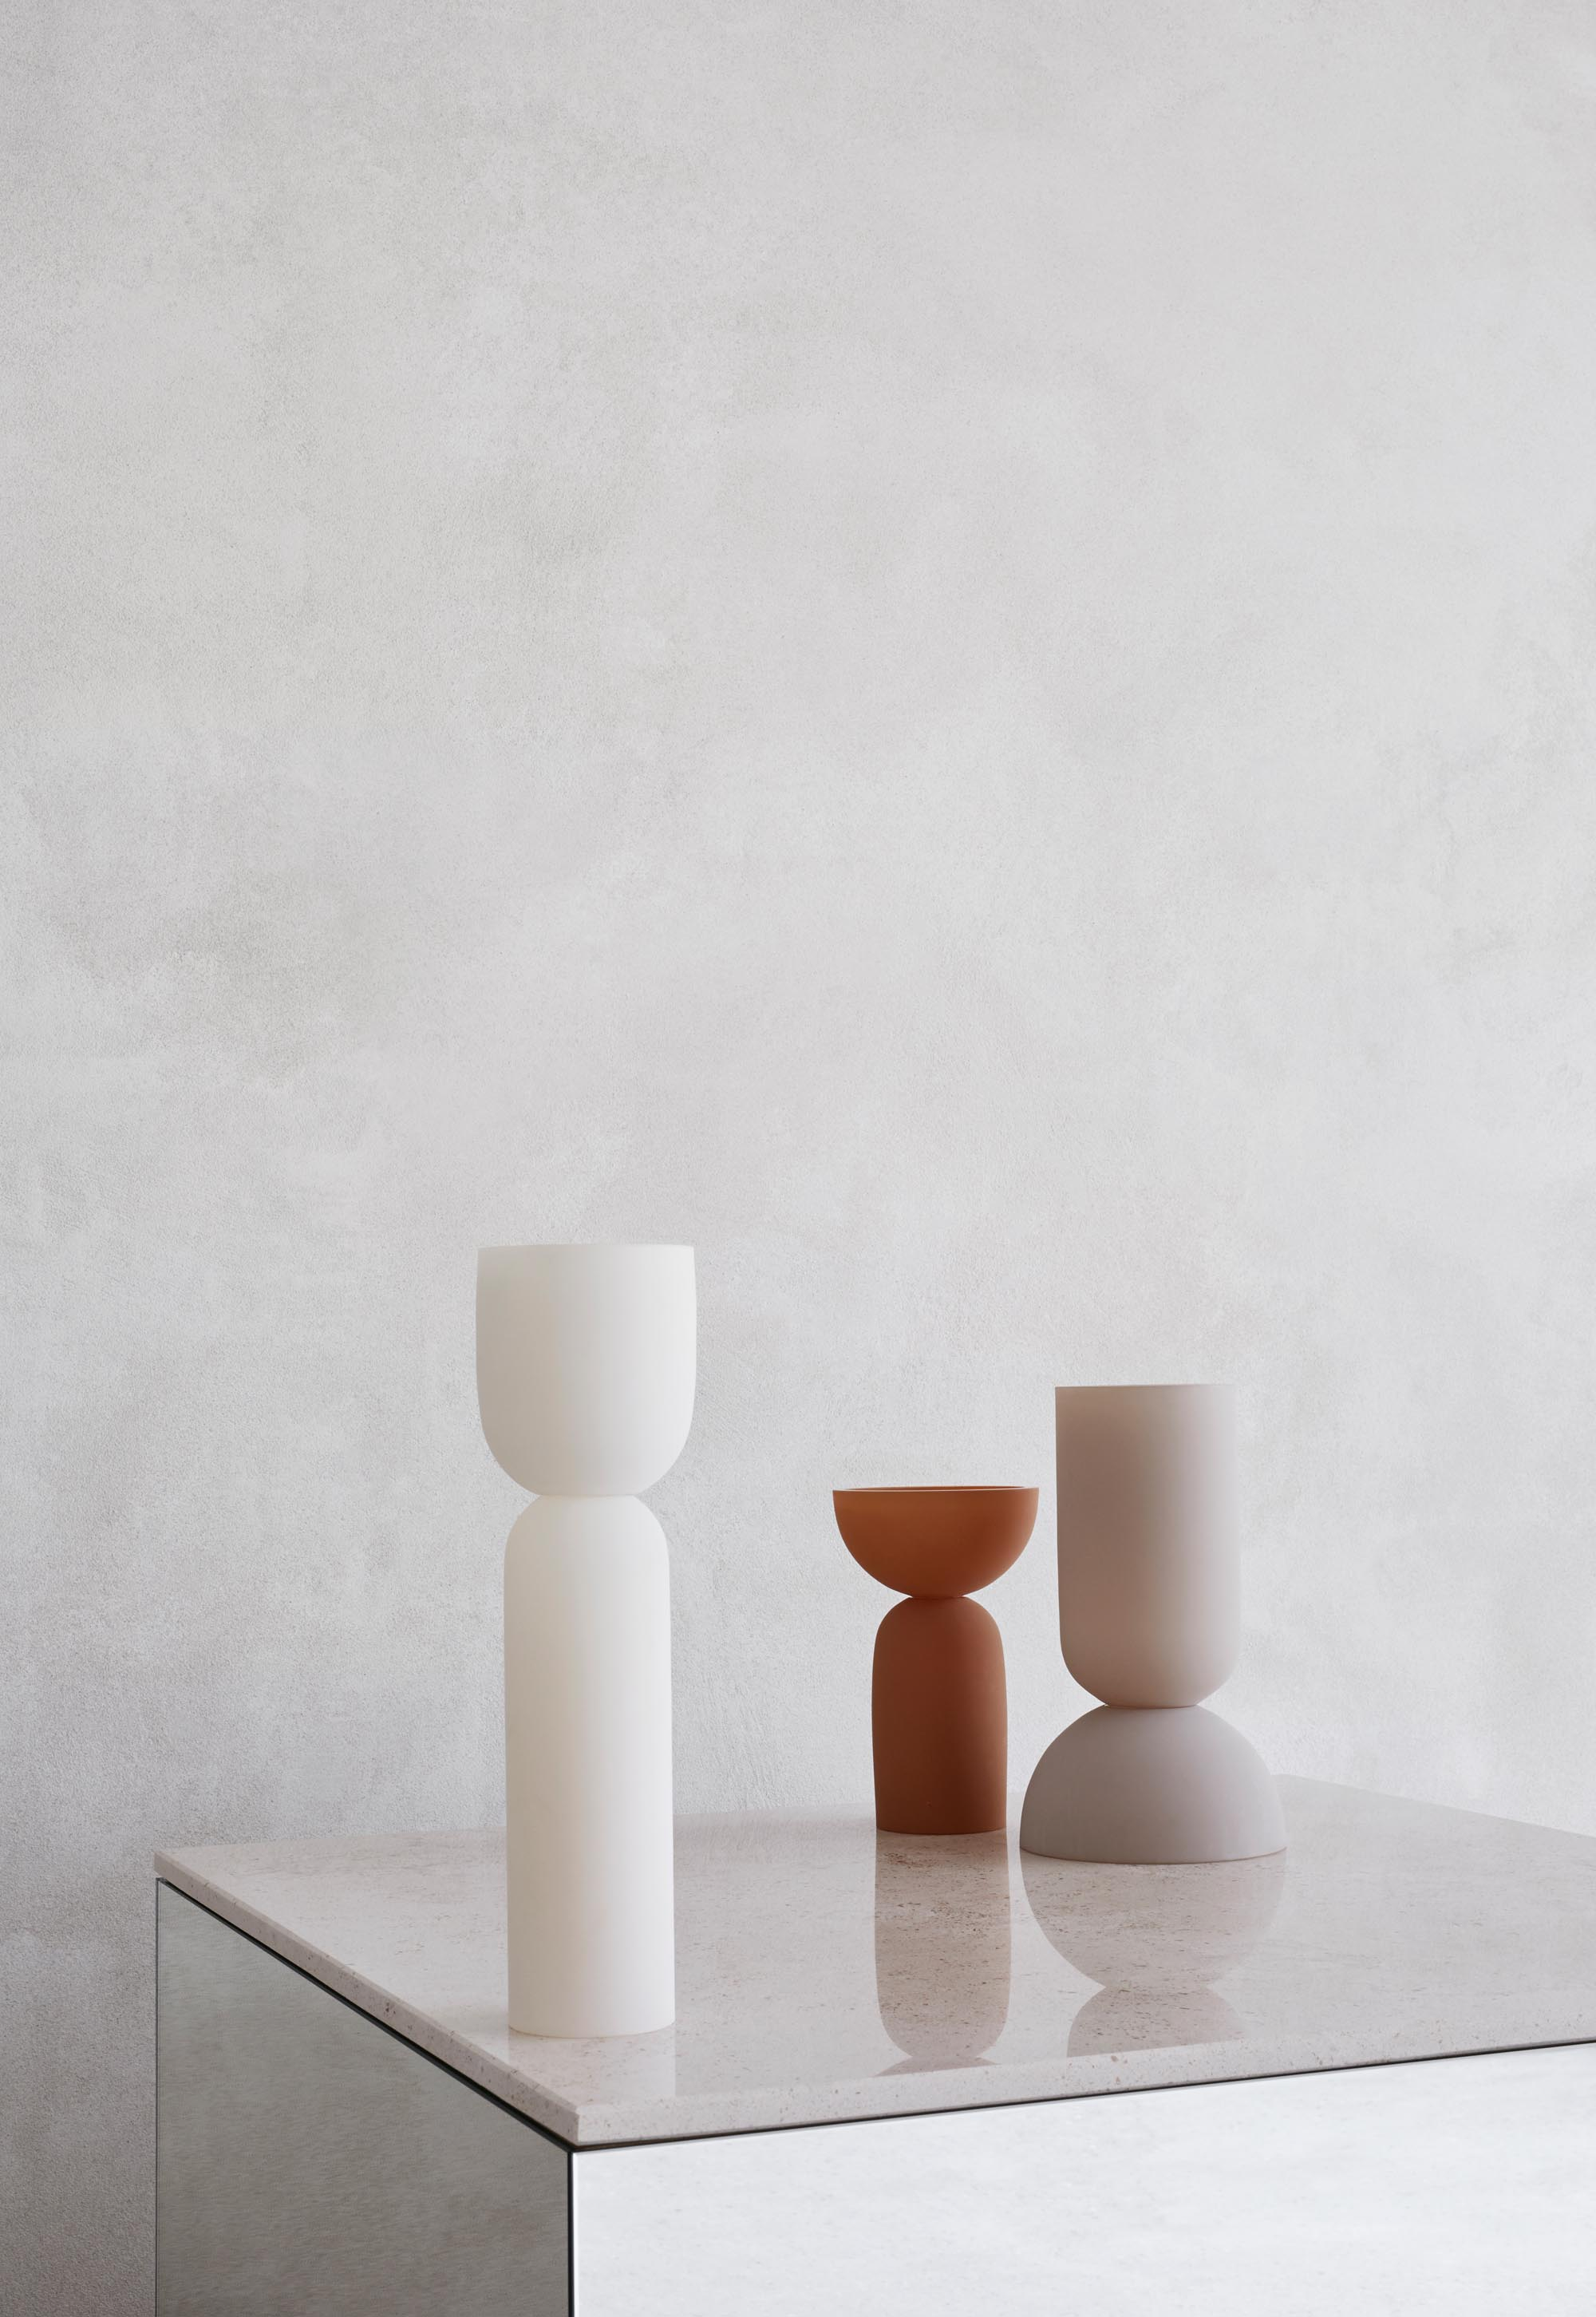 New finds from the Stockholm Furniture Fair 2020 - sculptural minimalism from Kristina Dam | These Four Walls blog